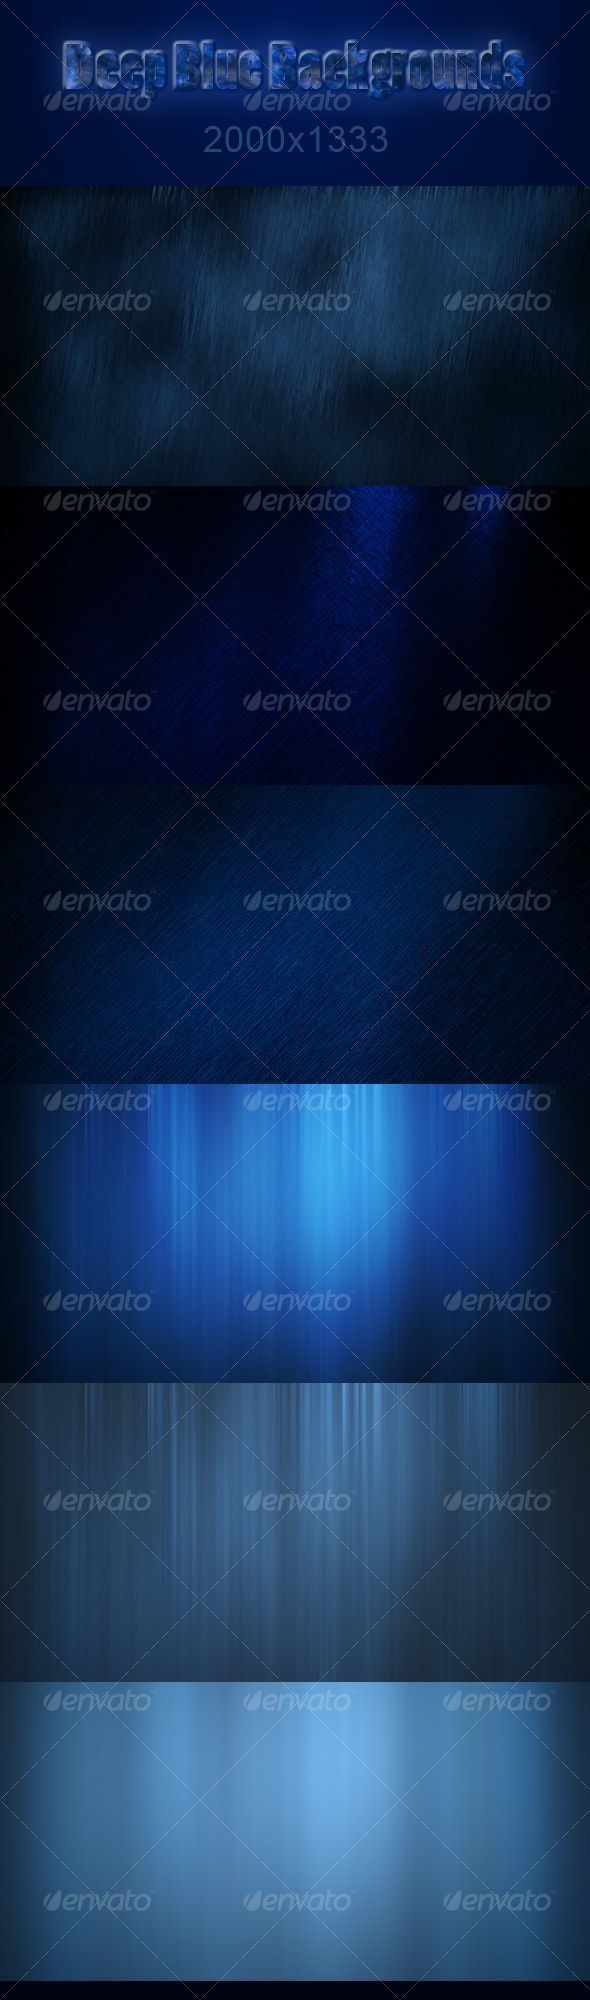 Deep Blue Backgrounds - Backgrounds Graphics